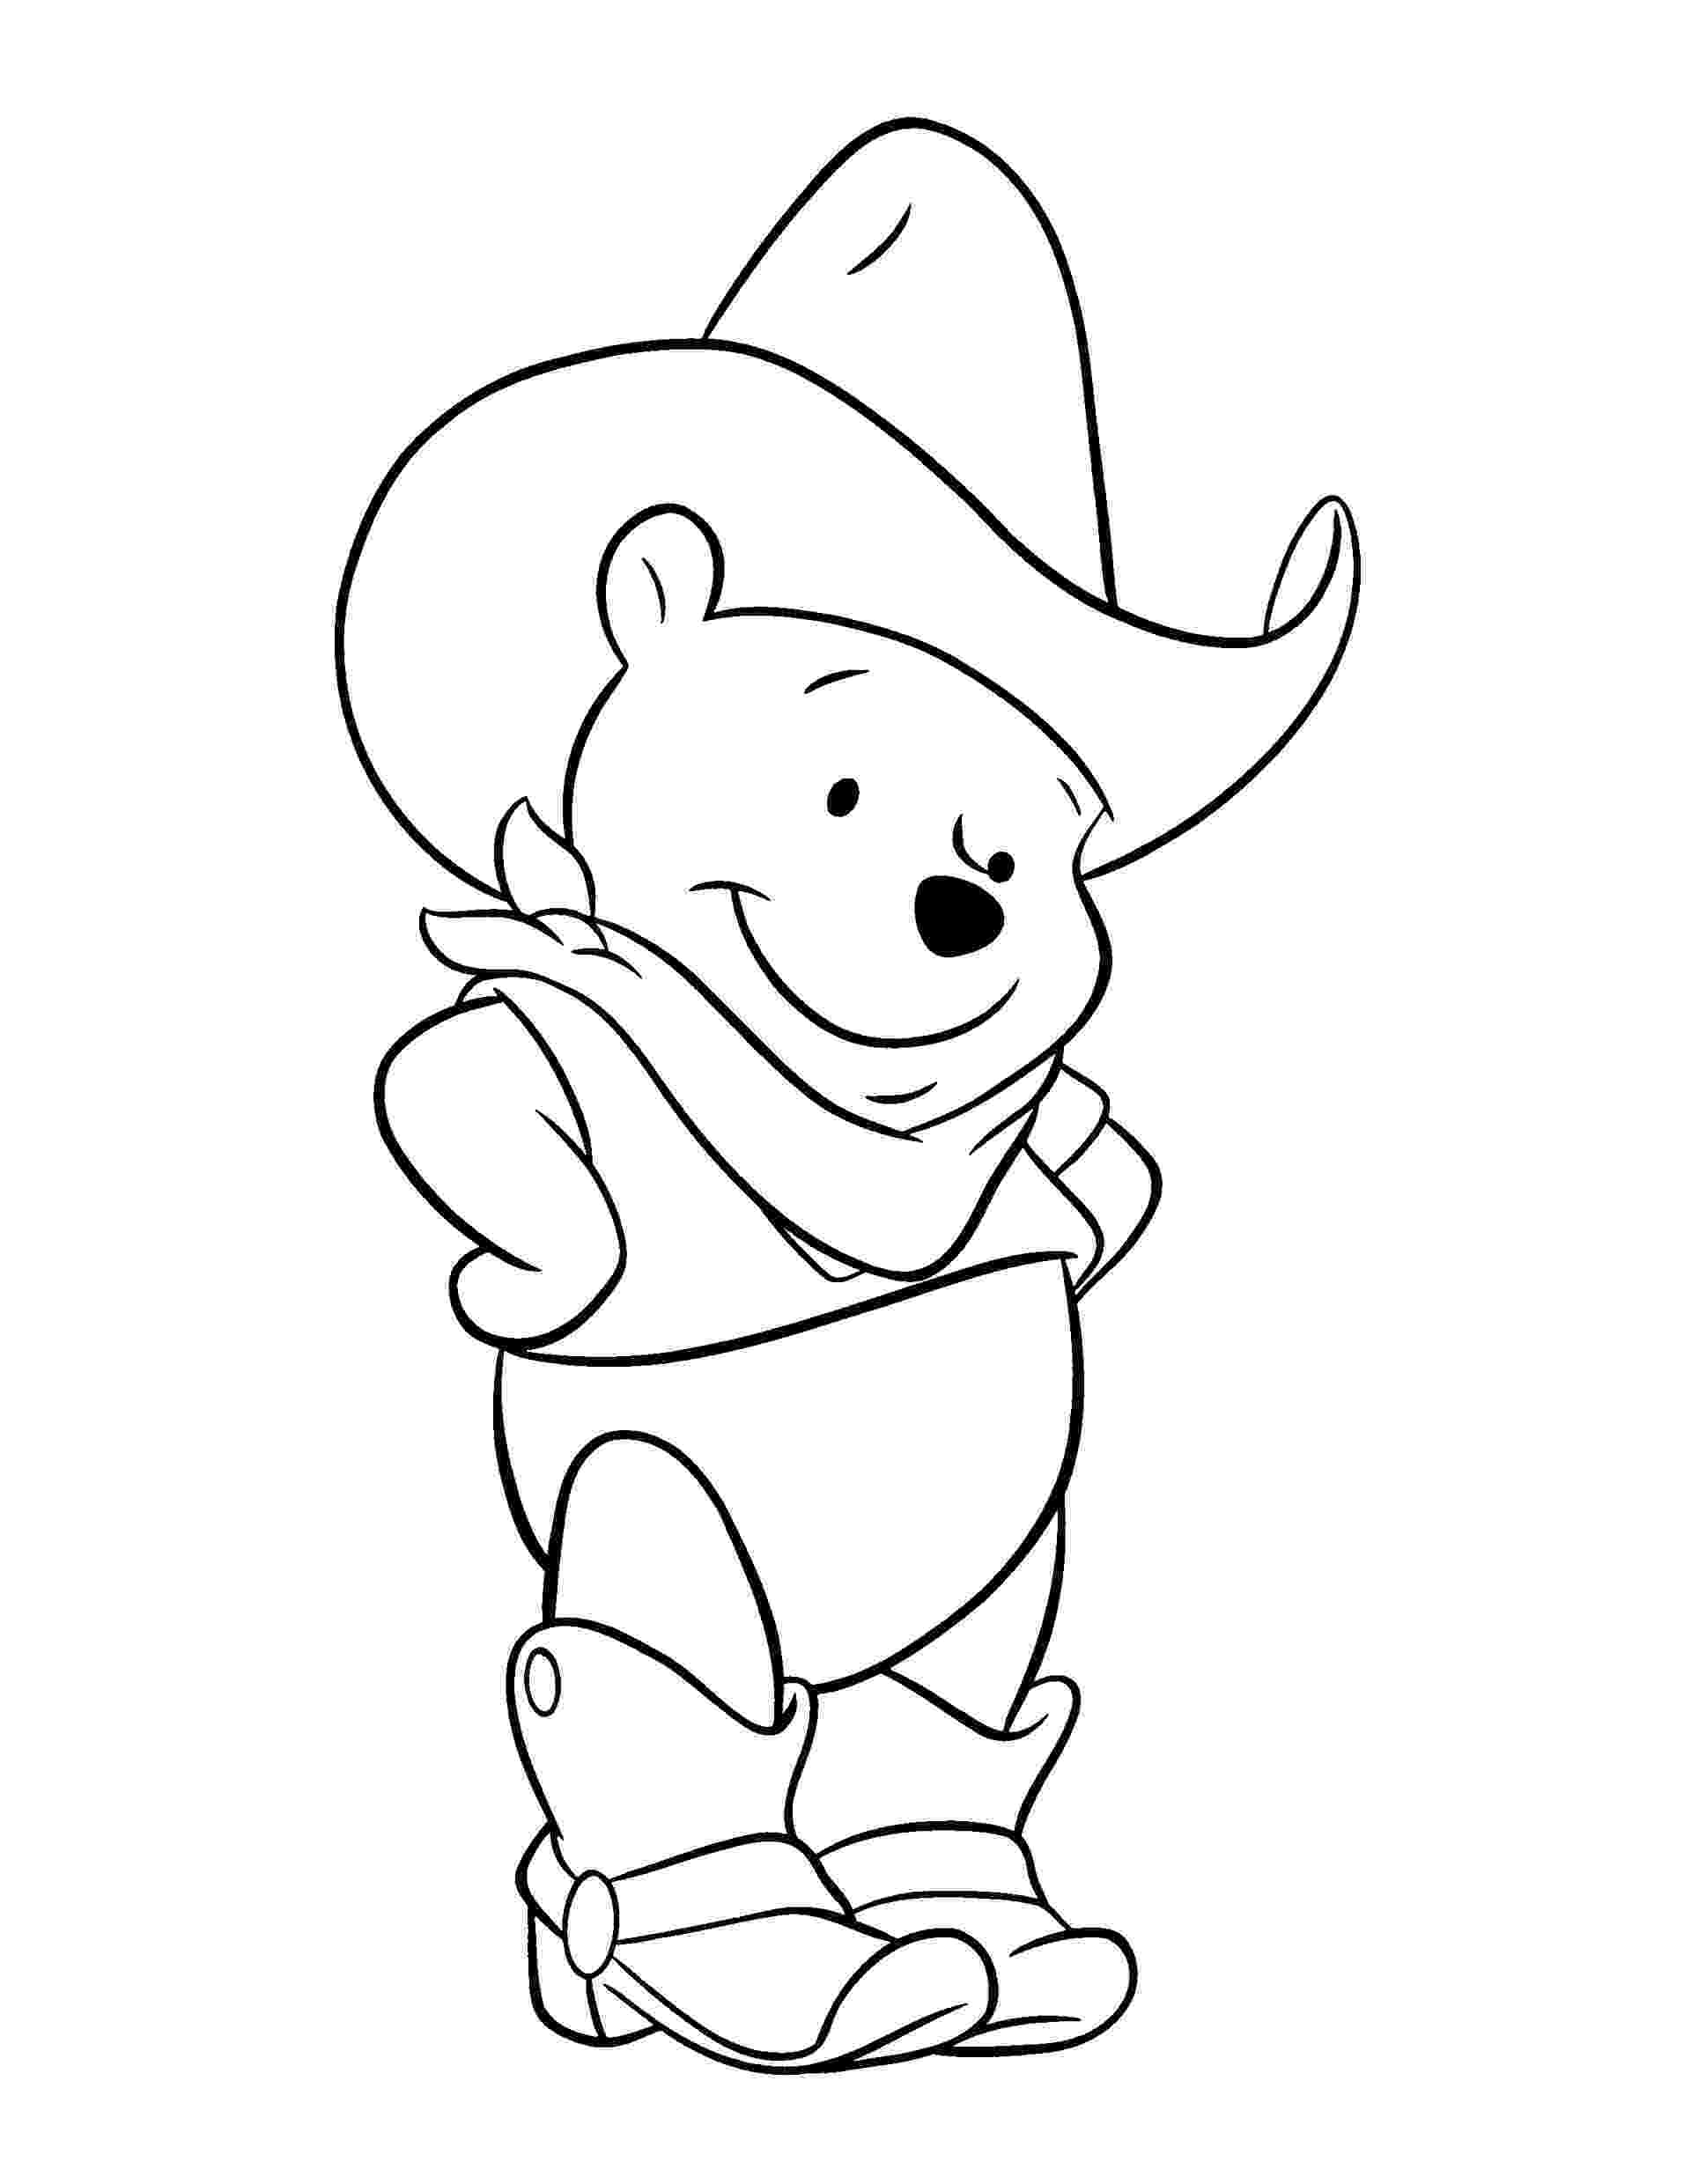 colouring pages of cartoon characters disney cartoon drawing at getdrawings free download pages colouring of characters cartoon